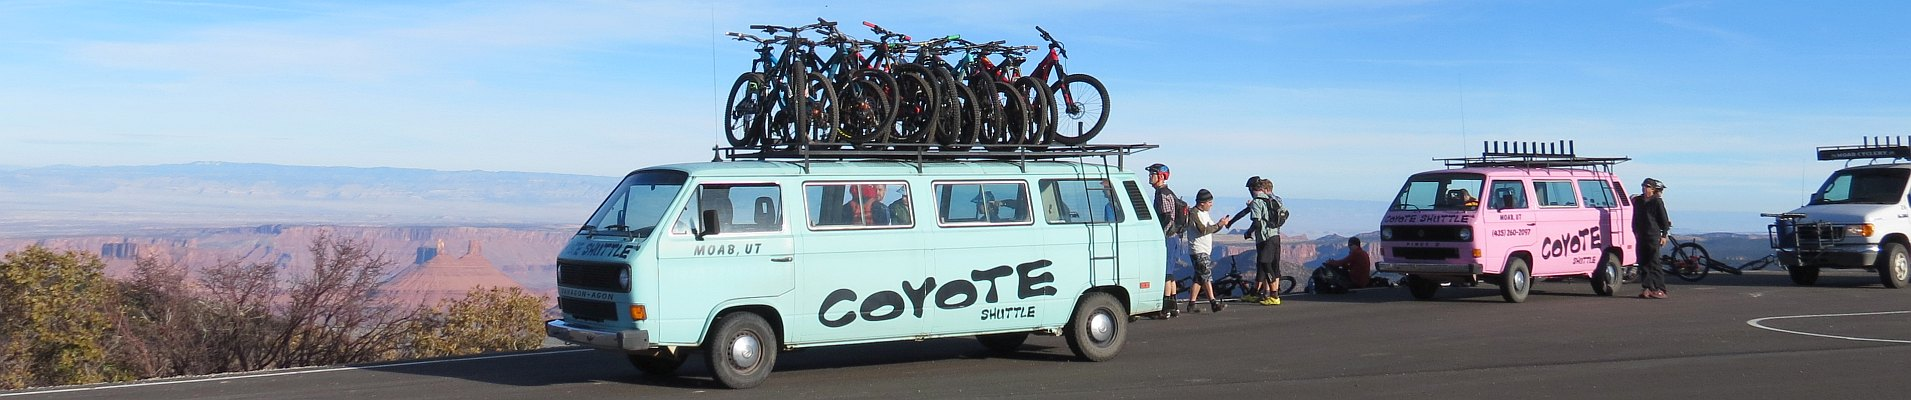 Coyote Shuttle Home